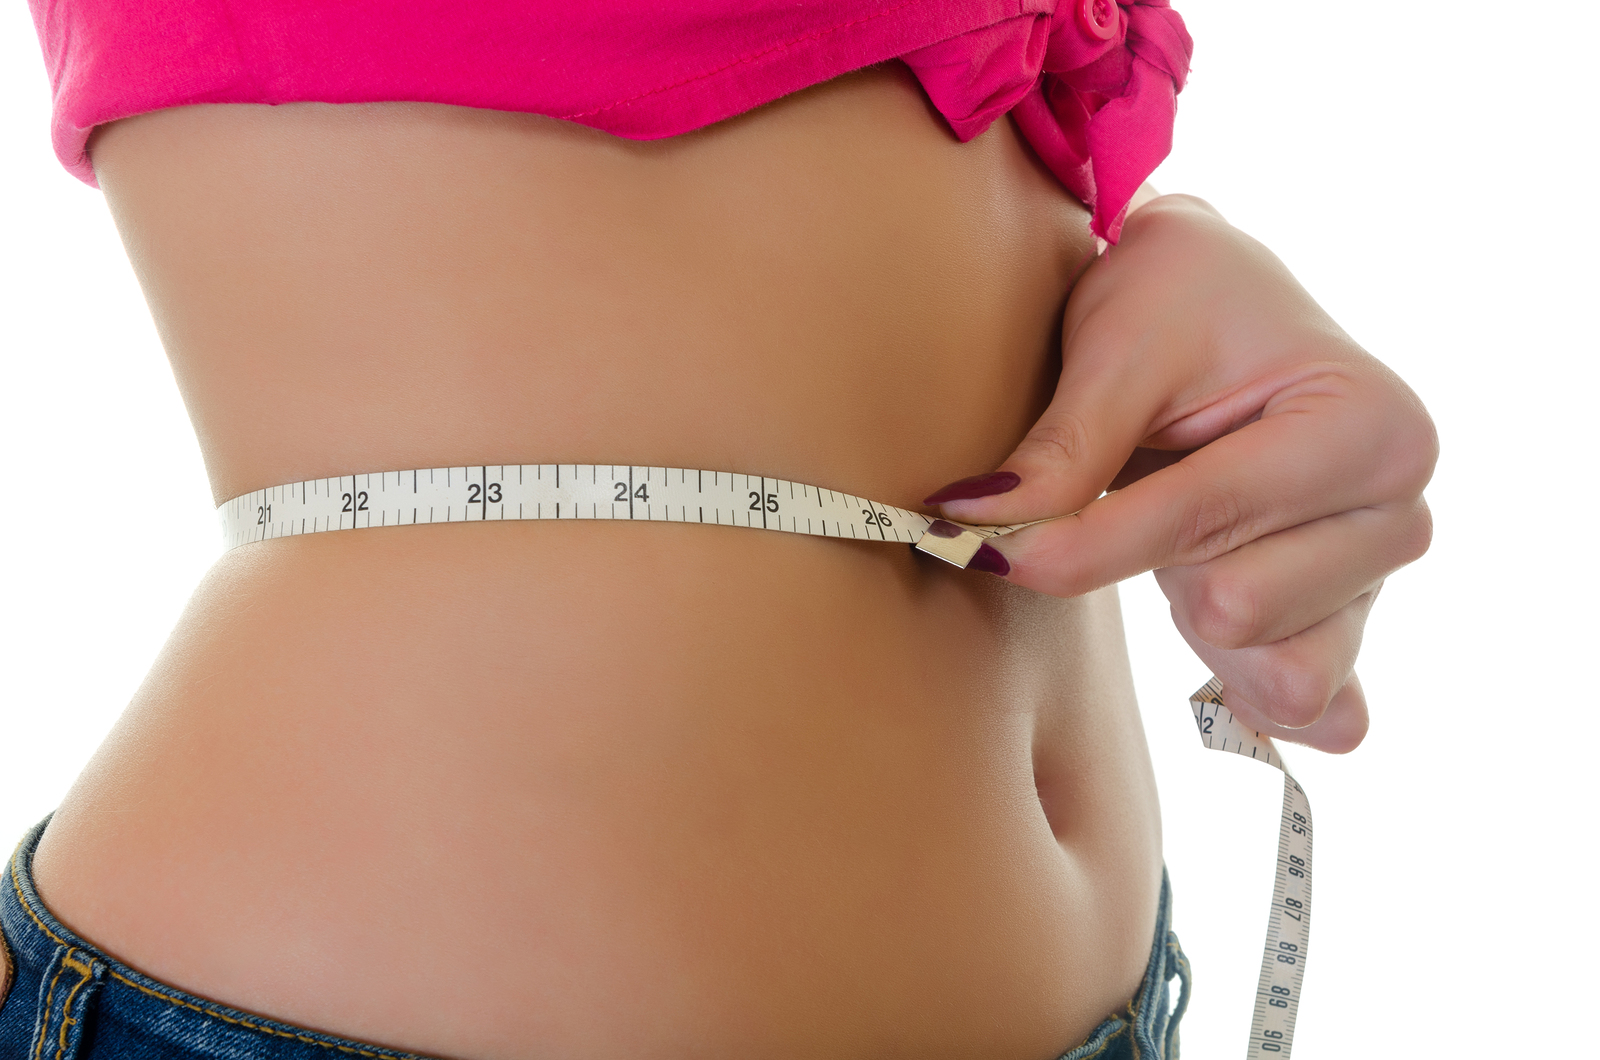 Vaser Lipo Treatment To Remove Excess Fat & Shape & Contour The Body